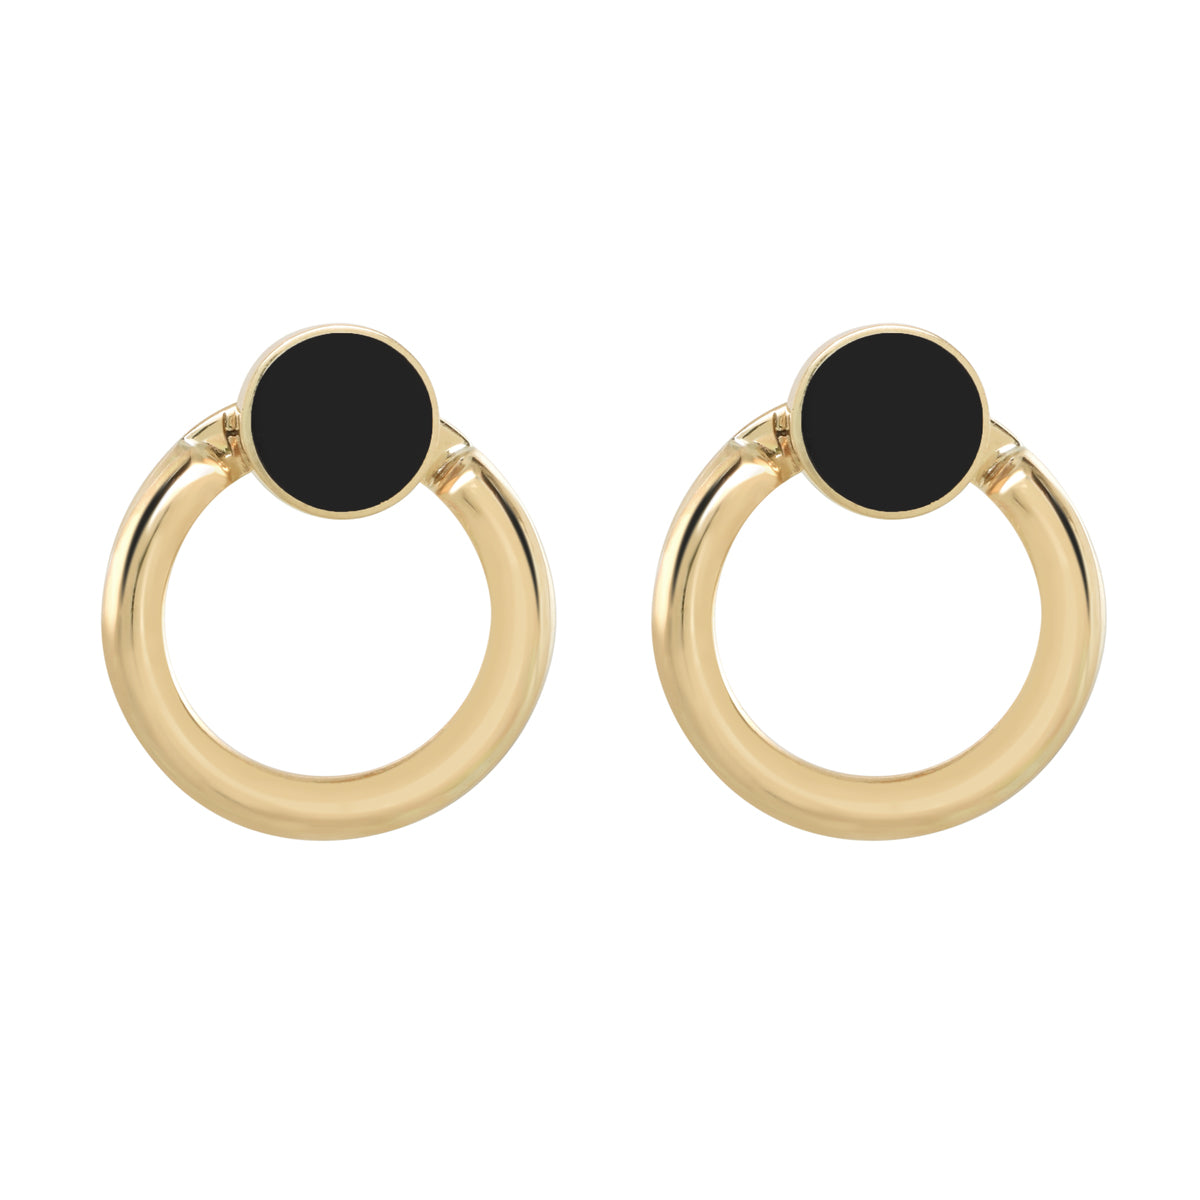 Eclipse Earrings - René Habie